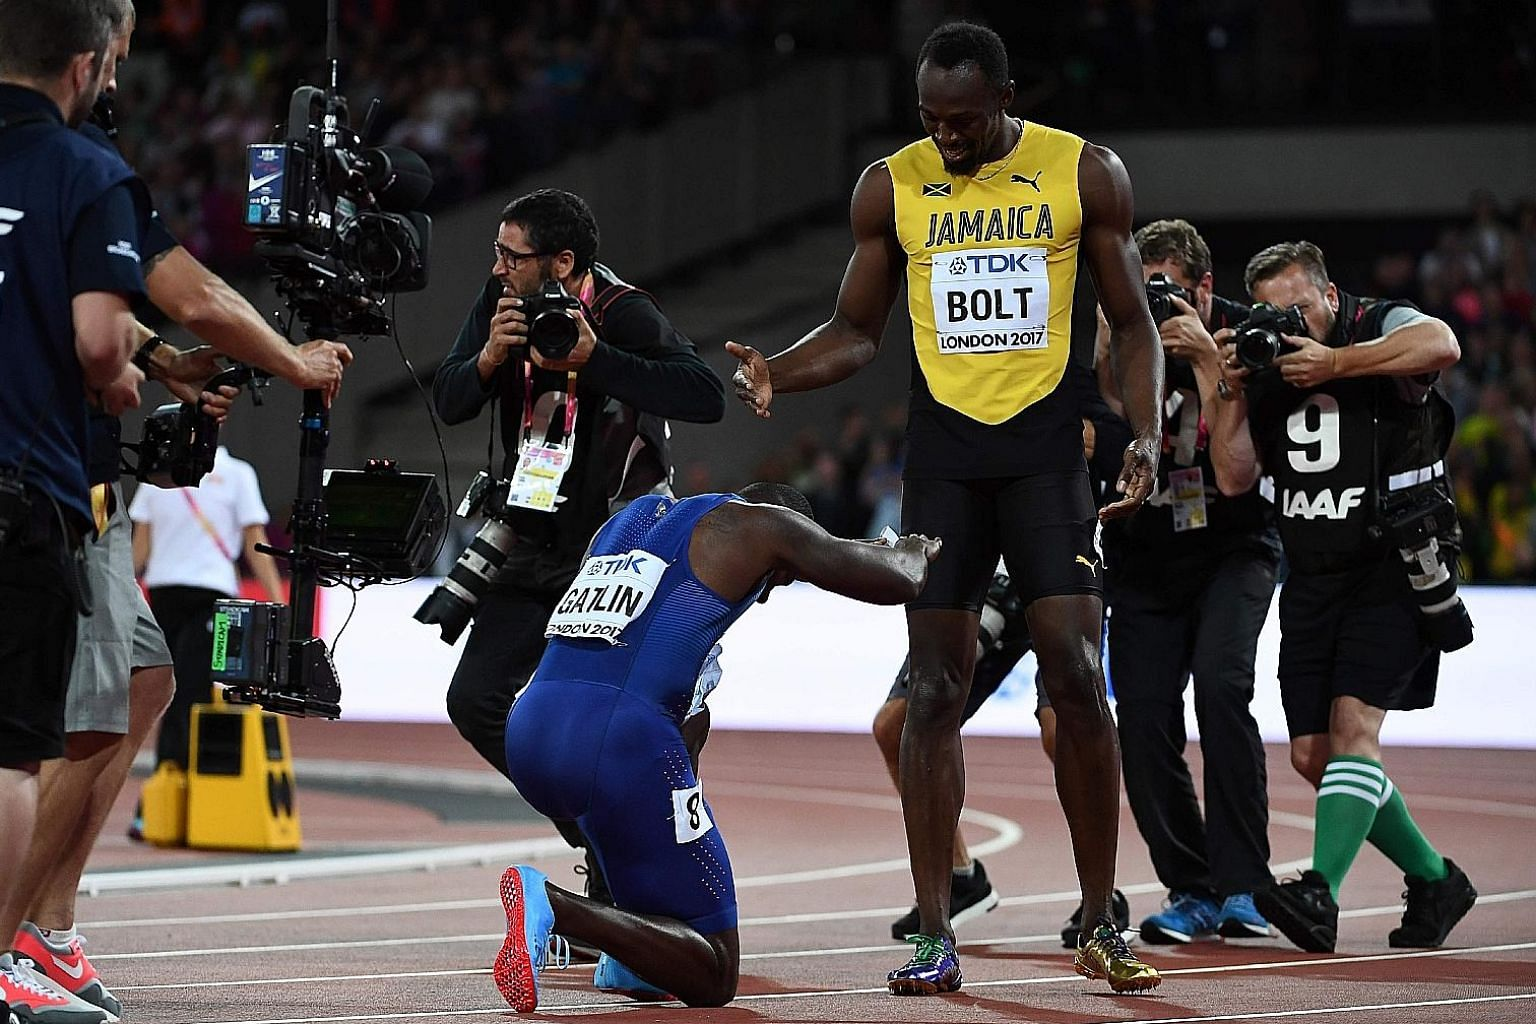 Justin Gatlin bowing down in respect to Usain Bolt, after his upset 100m win.